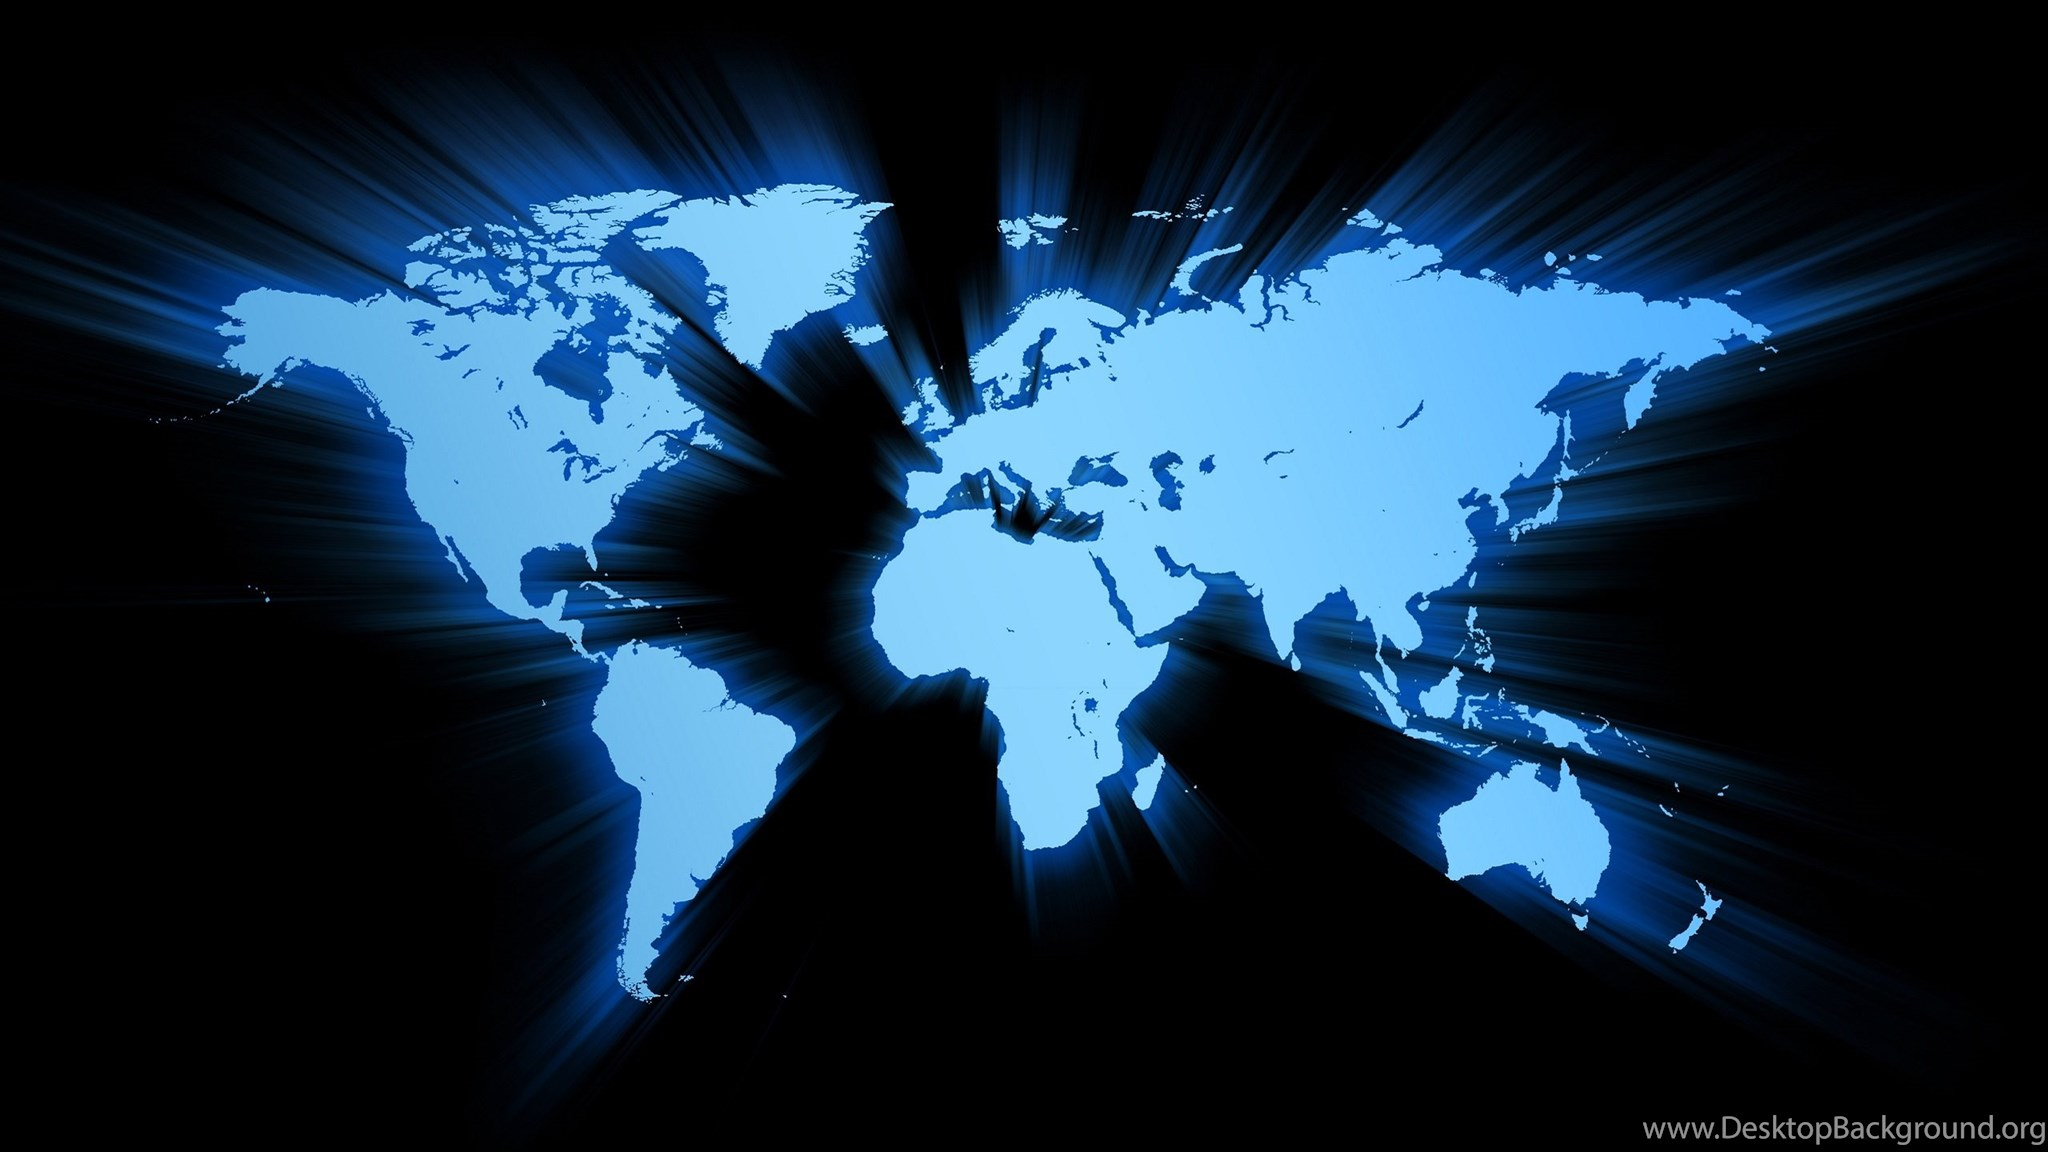 Black Blue World Map Of The Wallpapers For PC Desktop Background - World map screen wallpaper